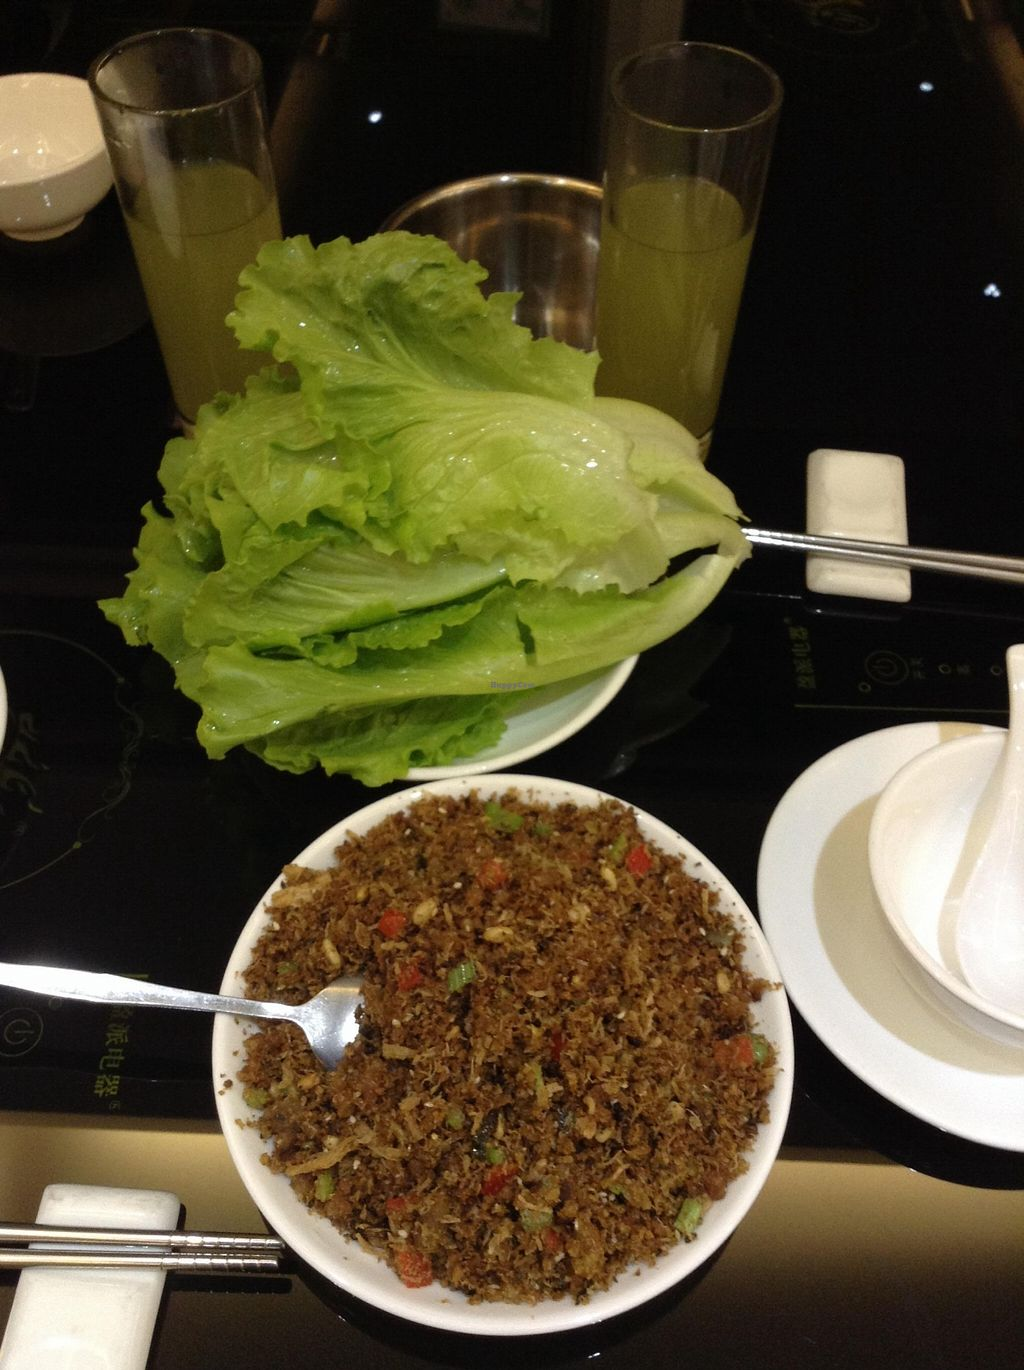 """Photo of Zhong Nong Jian Kang Jia Yuan  by <a href=""""/members/profile/eeyoresenigma"""">eeyoresenigma</a> <br/>The signature dish <br/> October 15, 2015  - <a href='/contact/abuse/image/30325/121379'>Report</a>"""